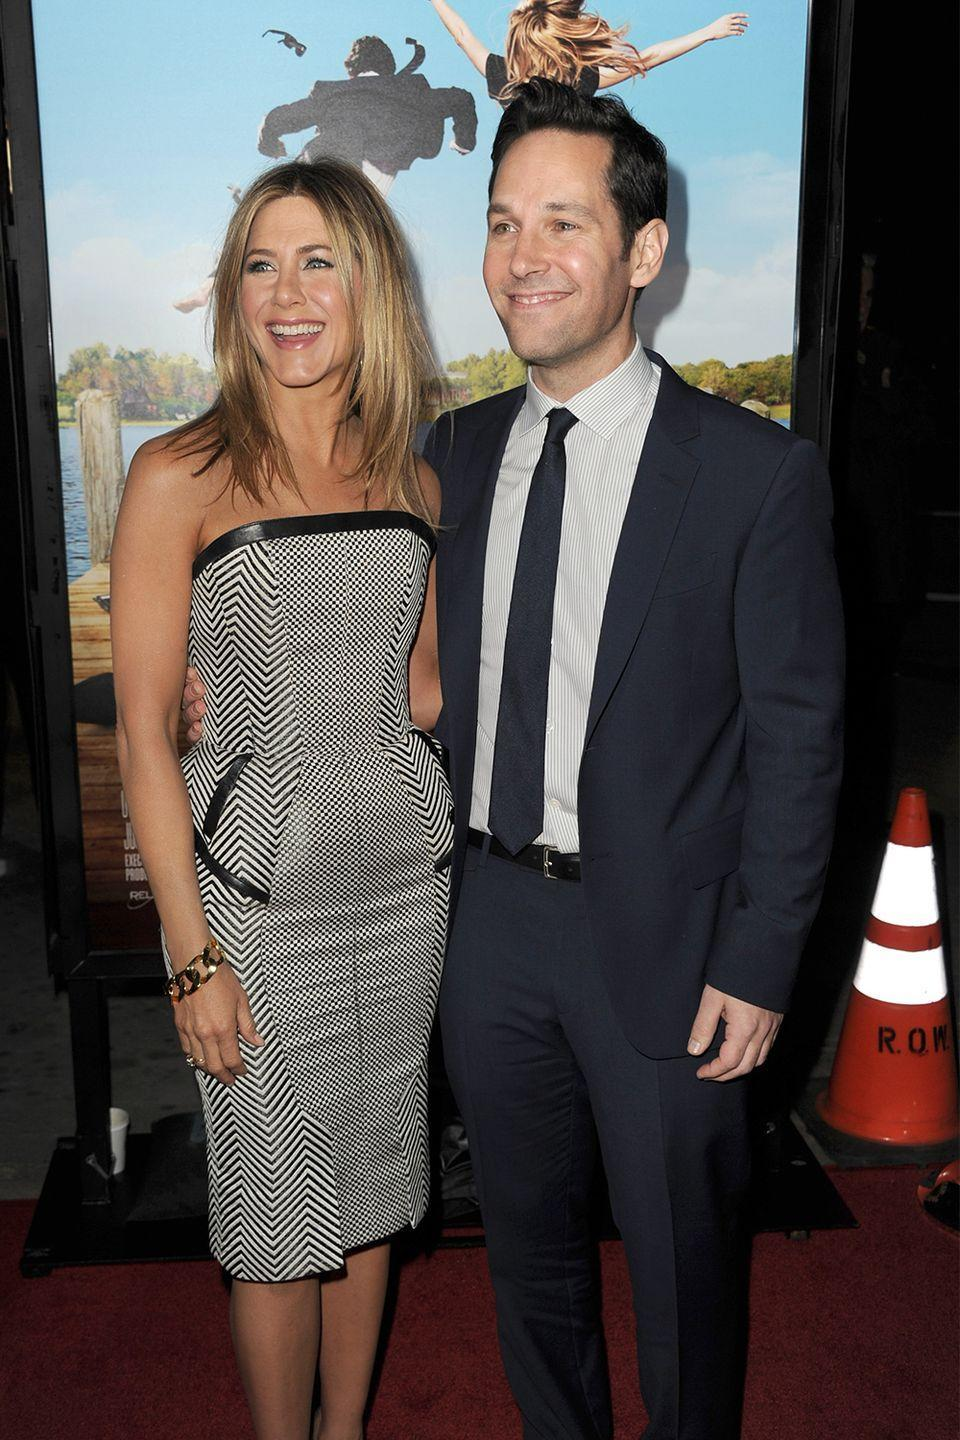 """<p>Jennifer Aniston and Paul Rudd go way back—they've been co-stars in multiple movies and TV shows together, and apparently <a href=""""http://www.celebsnow.co.uk/celebrity-news/11-things-you-didnt-know-about-paul-rudd-he-even-dated-jennifer-aniston-298276"""" rel=""""nofollow noopener"""" target=""""_blank"""" data-ylk=""""slk:dated for a brief period of time"""" class=""""link rapid-noclick-resp"""">dated for a brief period of time</a> while filming <em>The Object of My Affection.</em> Now, they're just really good friends. </p><p>In a 2012 <a href=""""https://www.gq.com/story/jennifer-aniston-paul-rudd-gq-march-2012-cover-story"""" rel=""""nofollow noopener"""" target=""""_blank"""" data-ylk=""""slk:interview with GQ"""" class=""""link rapid-noclick-resp"""">interview with <em>GQ</em></a><em>,</em> when asked if it was weird to kiss her friend onscreen, Aniston said,""""Nah. I've kissed him for years."""" Rudd chimed in and added, """"We've made out for decades.""""</p>"""